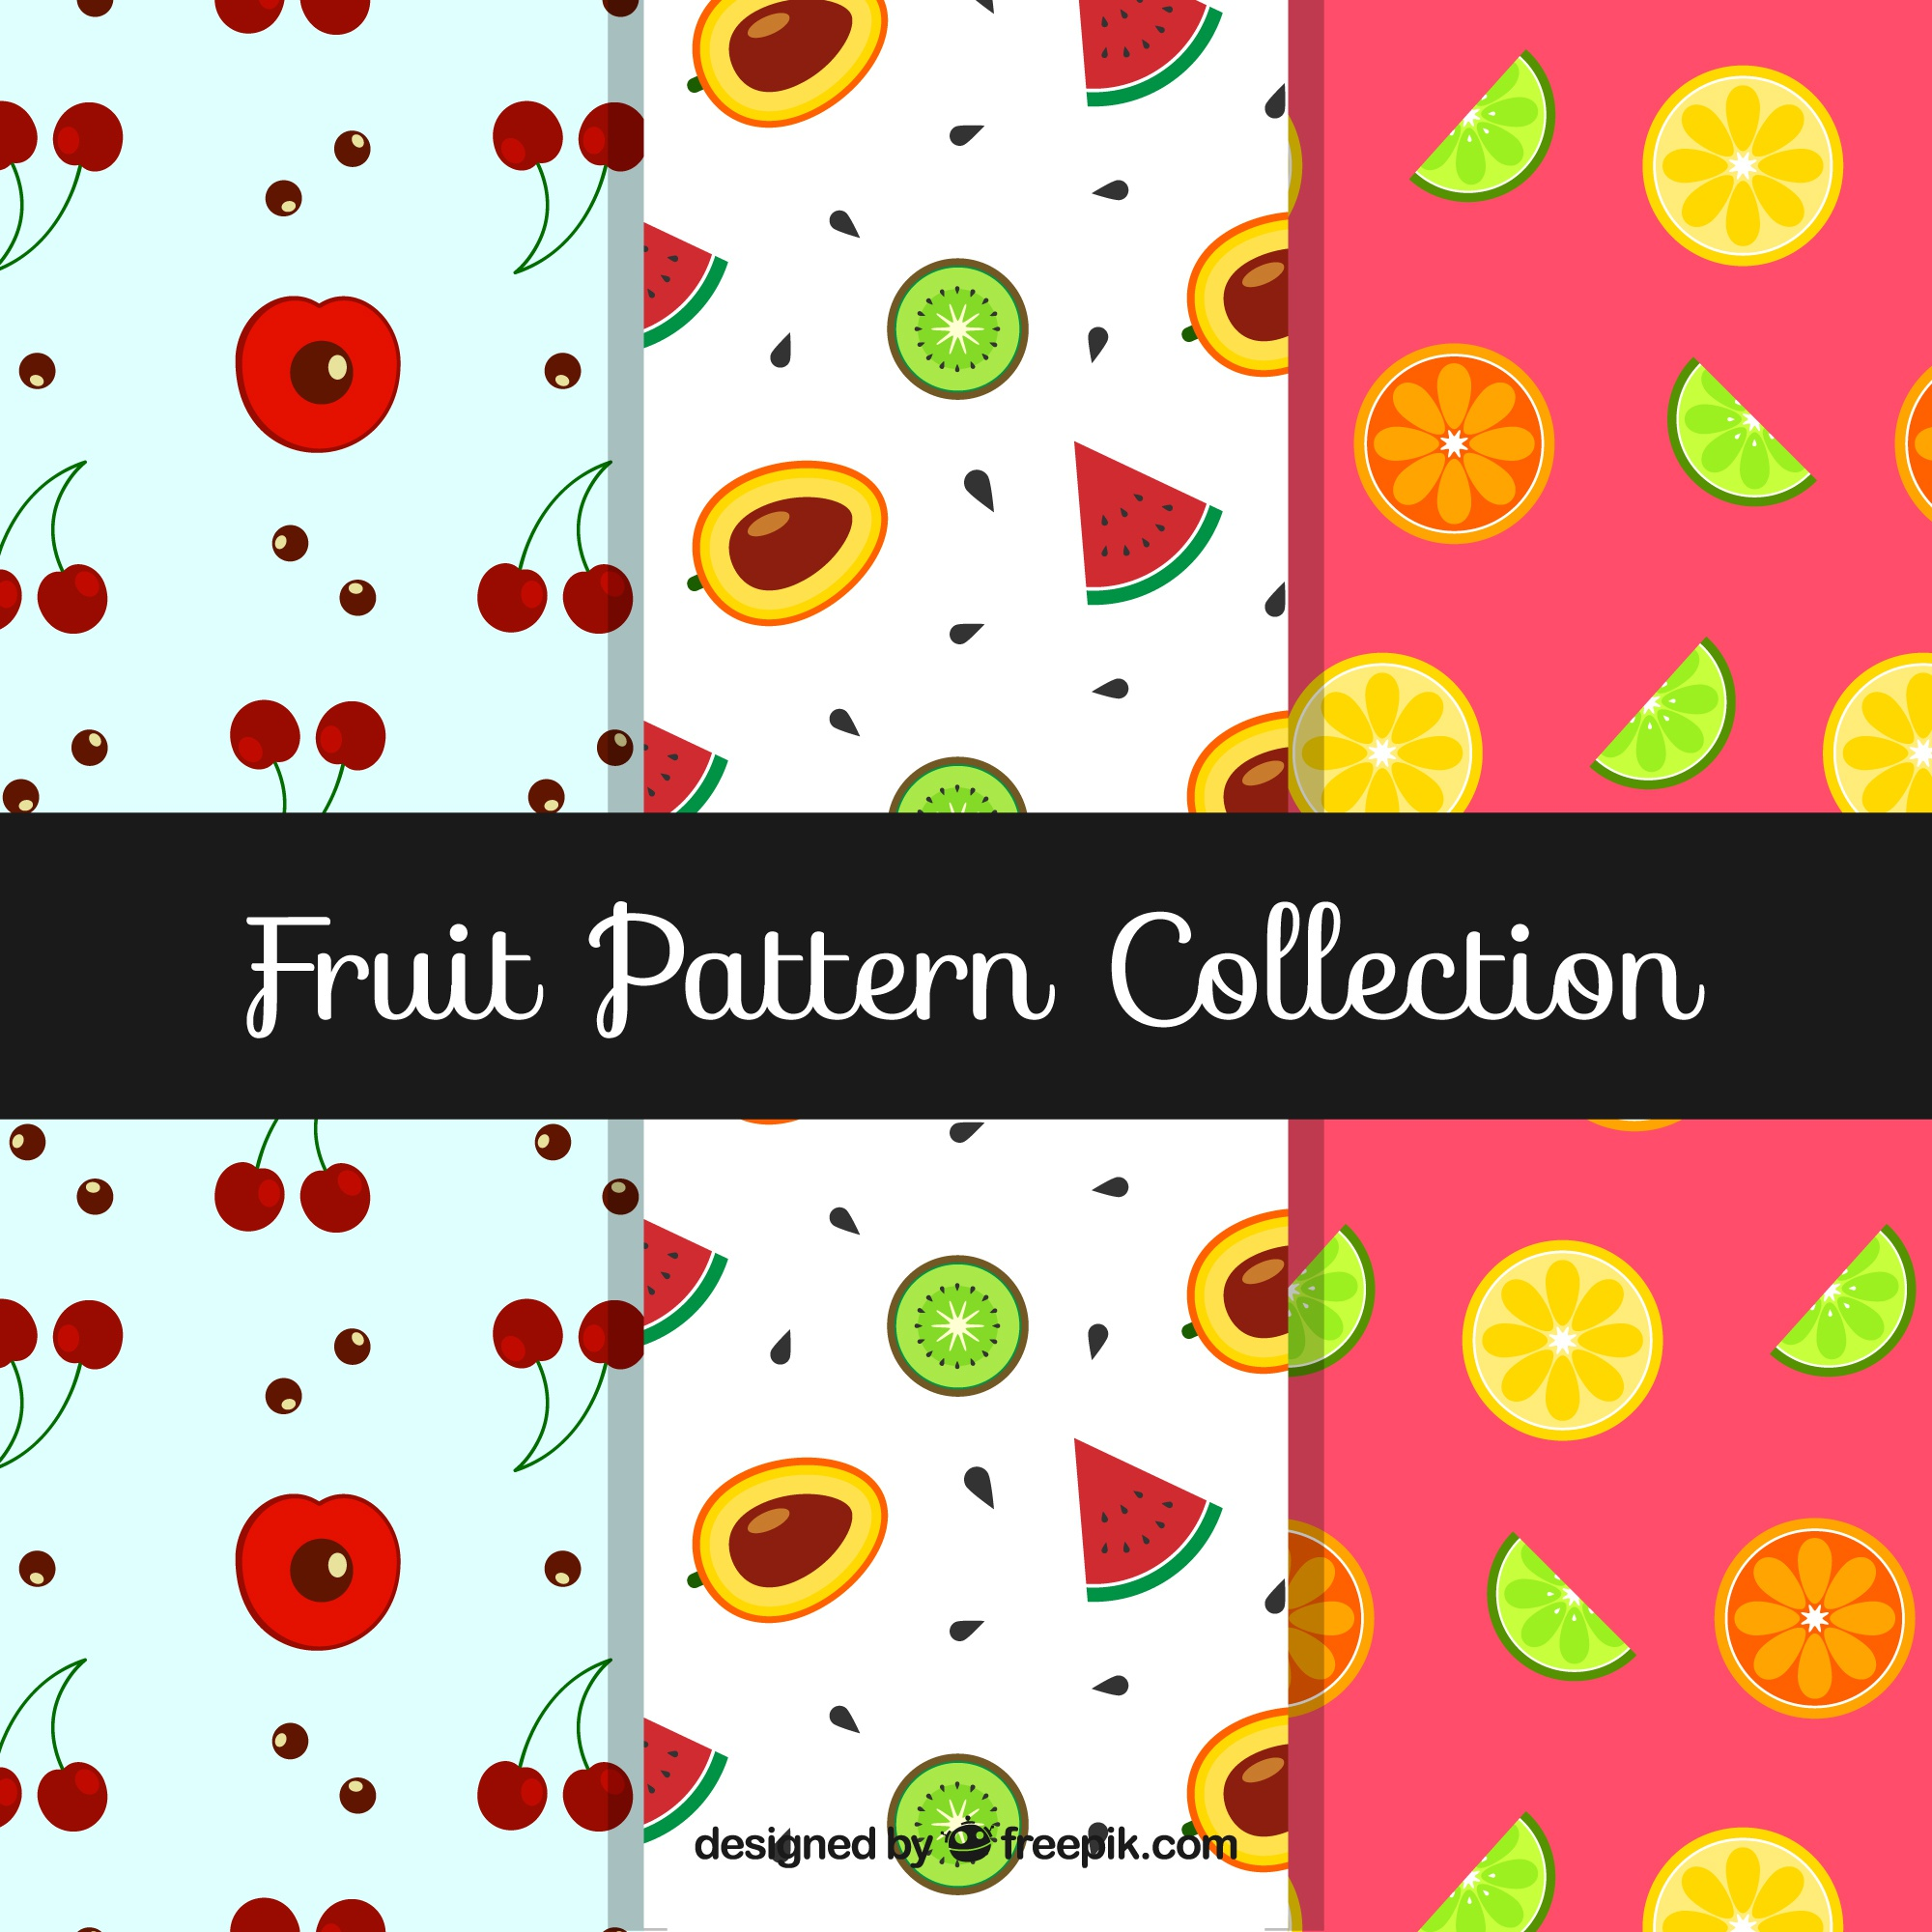 Several patterns with tasty fruits in flat design